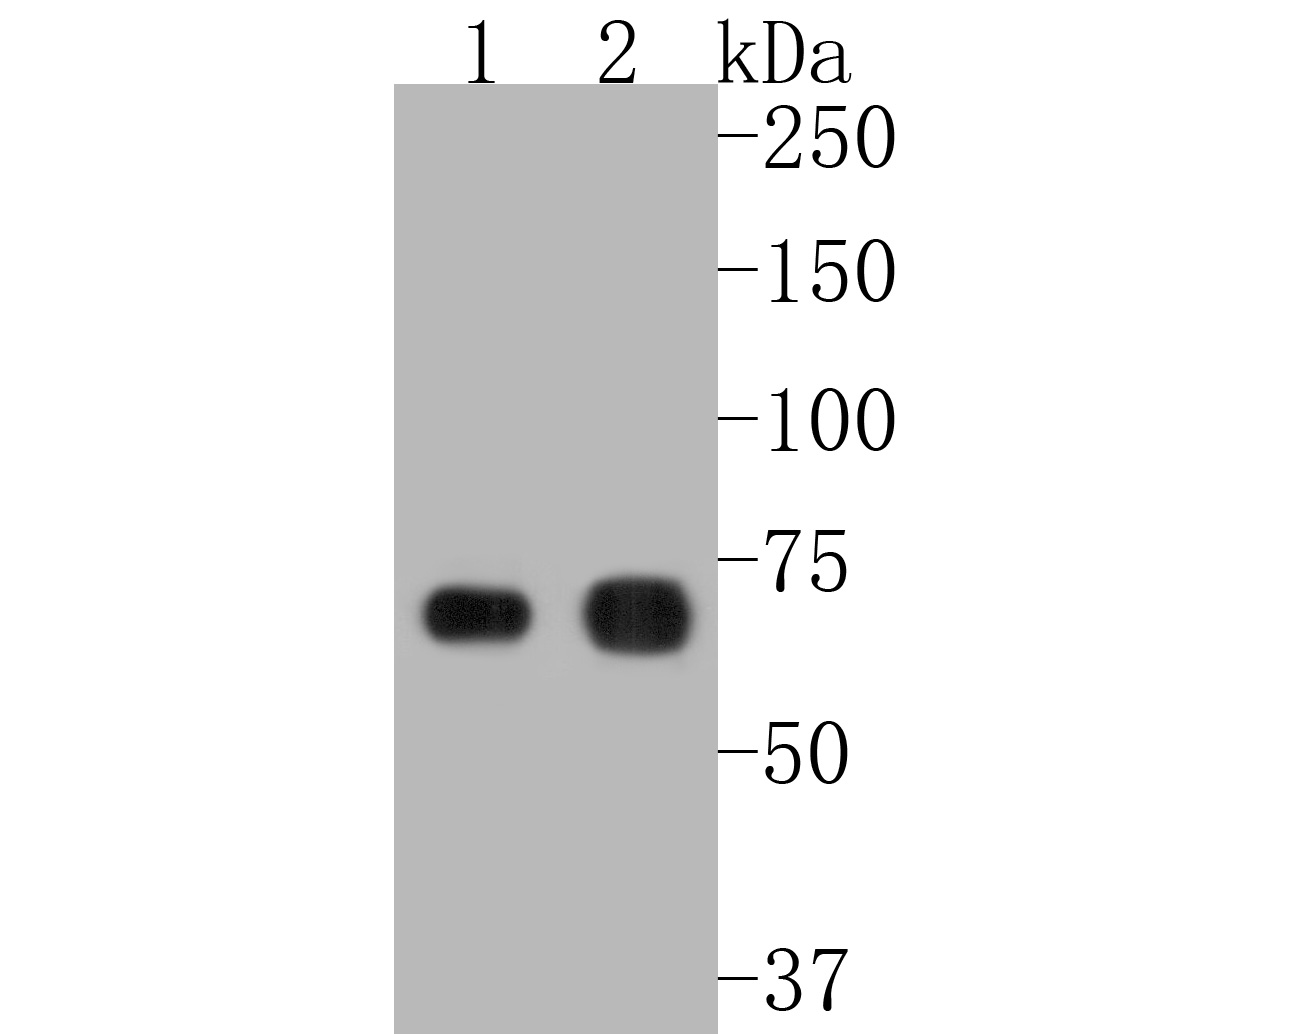 Western blot analysis of PKR on different lysates. Proteins were transferred to a PVDF membrane and blocked with 5% BSA in PBS for 1 hour at room temperature. The primary antibody (ET1610-84, 1/500) was used in 5% BSA at room temperature for 2 hours. Goat Anti-Rabbit IgG - HRP Secondary Antibody (HA1001) at 1:5,000 dilution was used for 1 hour at room temperature.<br /> Positive control: <br /> Lane 1: MCF-7 cell lysate<br /> Lane 2: Hela cell lysate